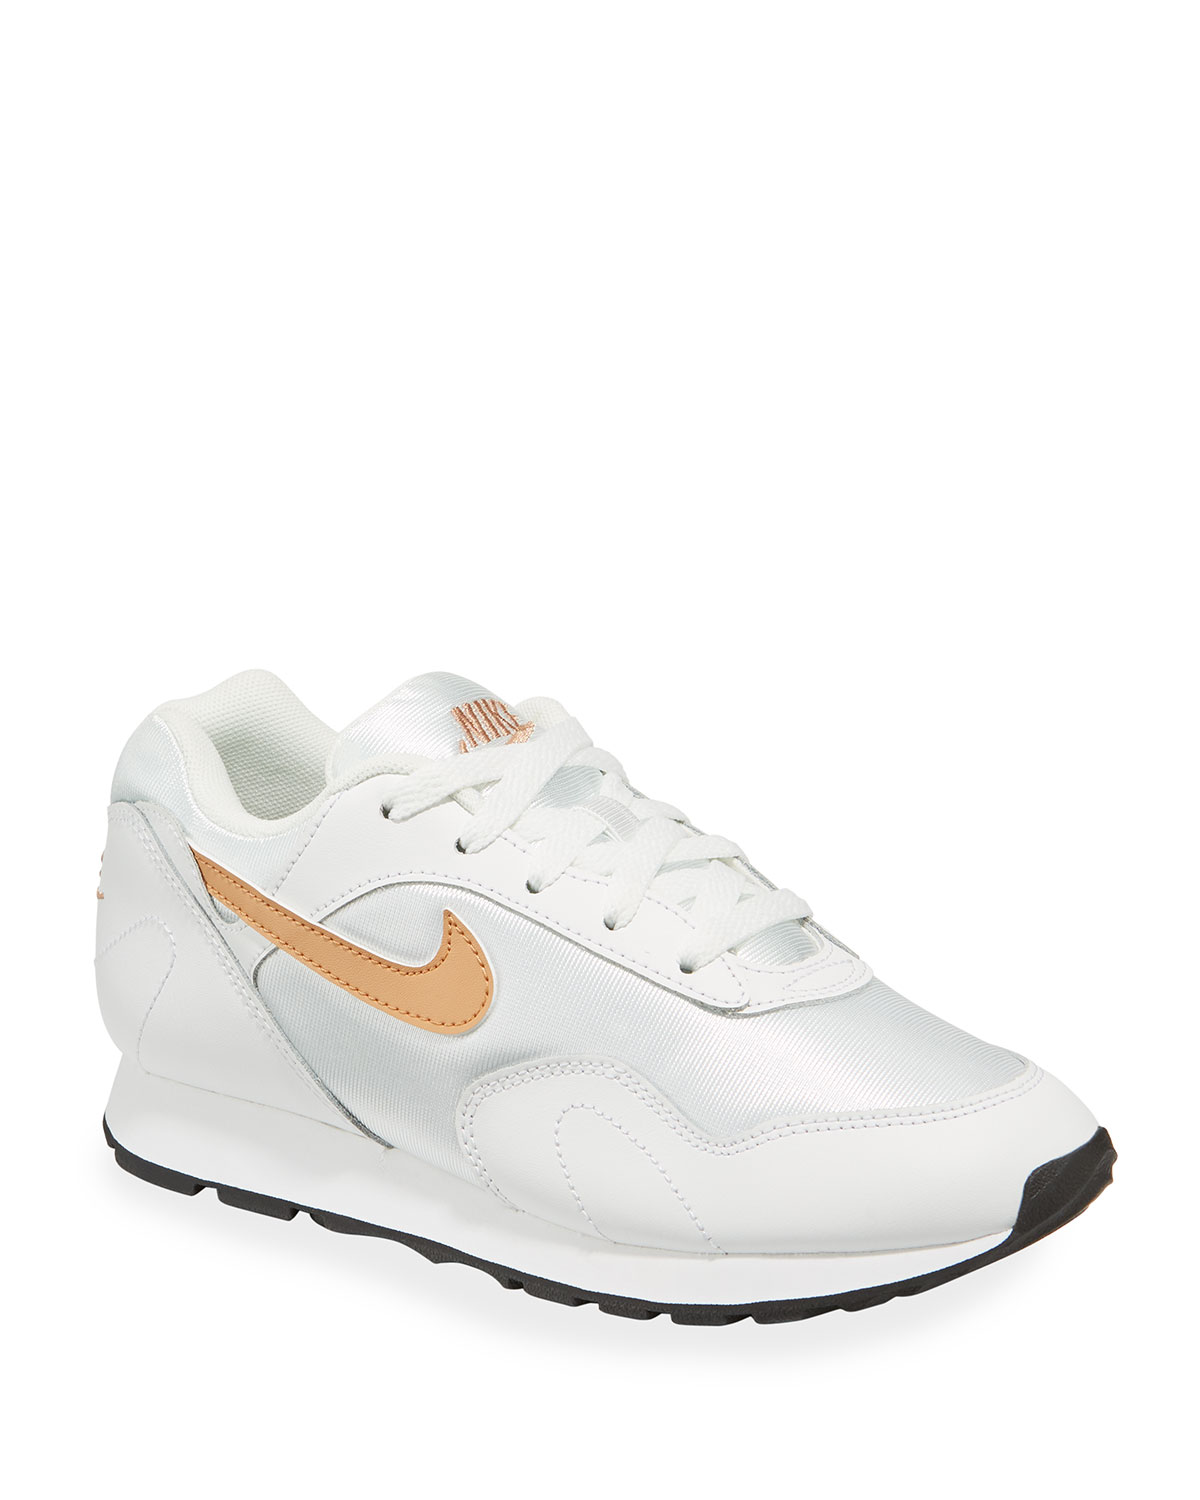 b41688e2c60 Nike Outburst Mixed Lace-Up Sneakers